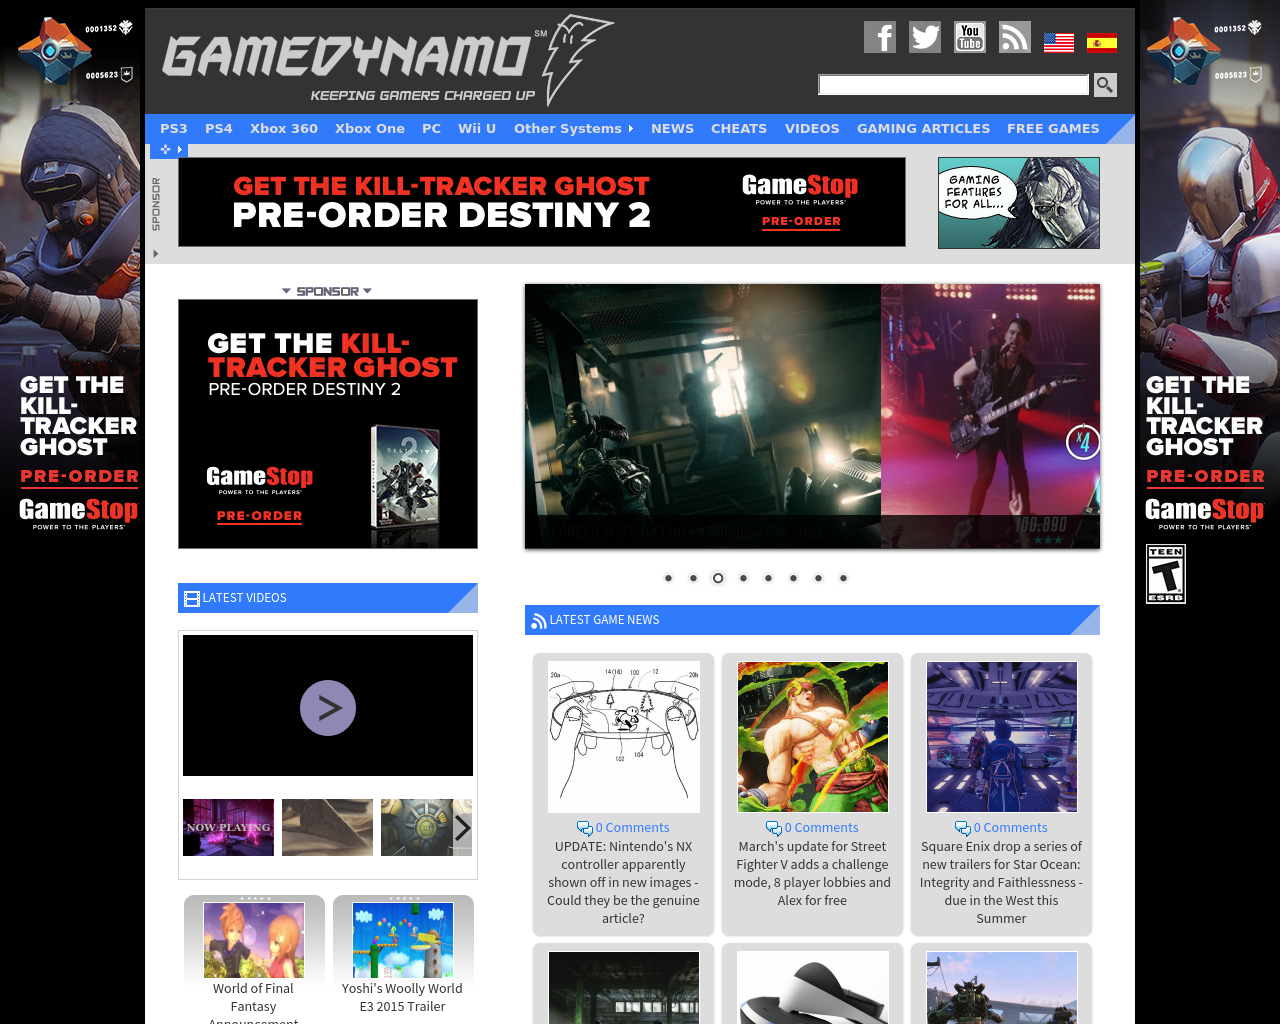 GameDynamo-Advertising-Reviews-Pricing